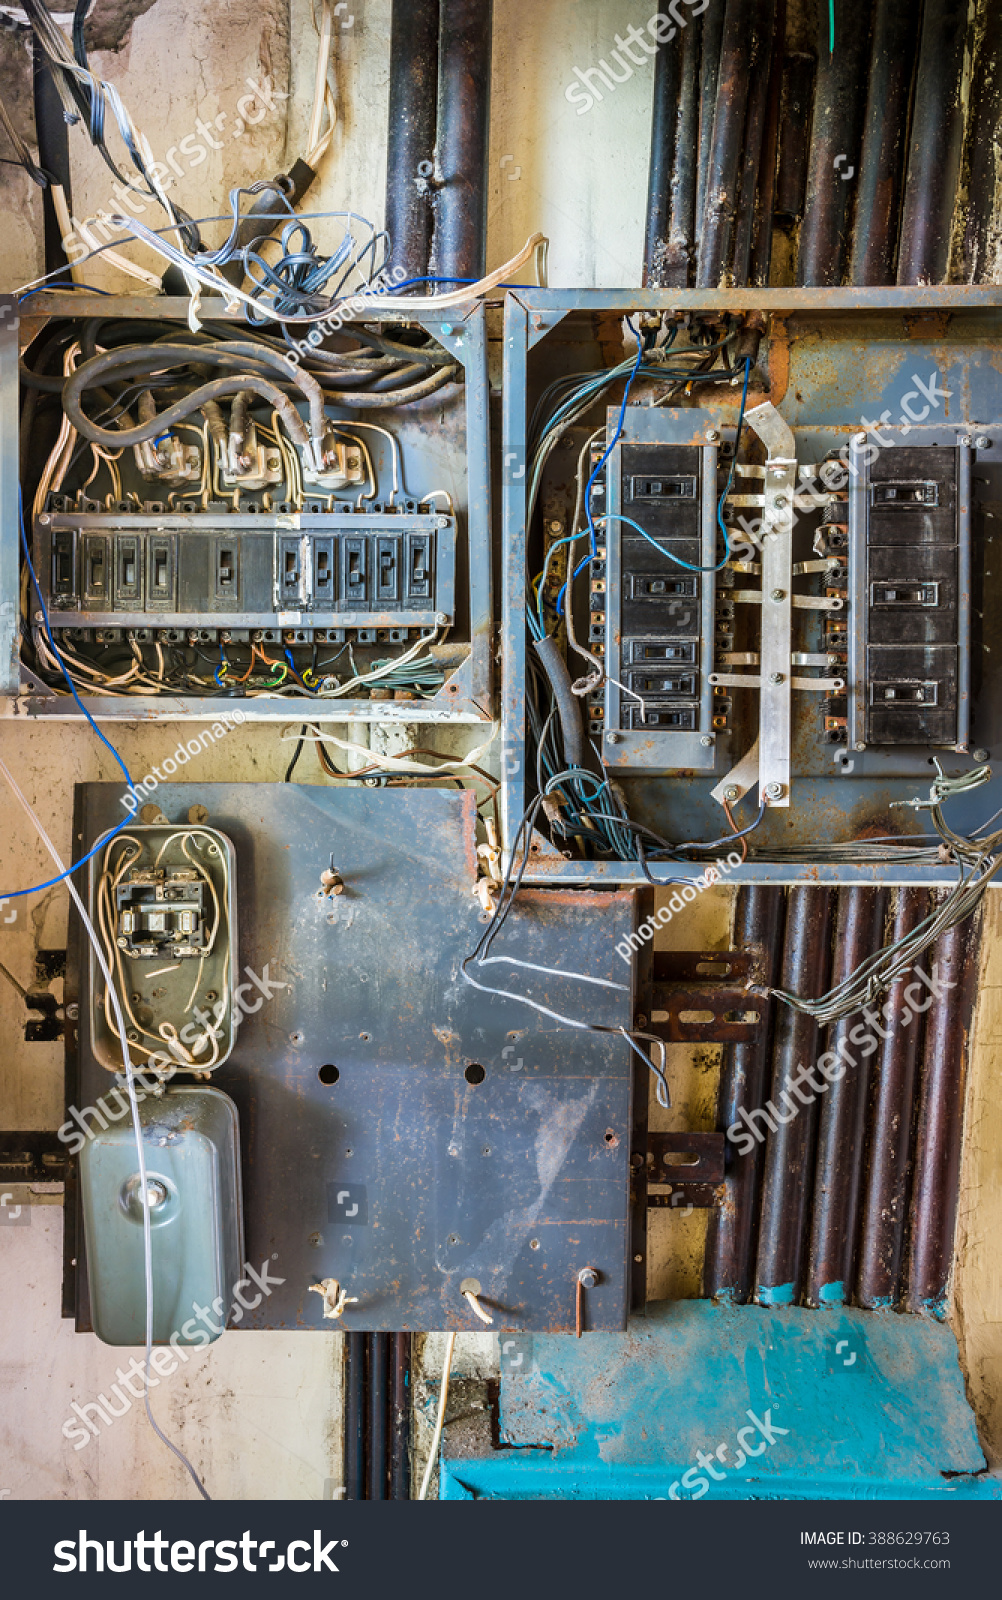 Old Electrical Metal Box With Plastic Switches Wires And Other Wiring Of Iron Id 388629763